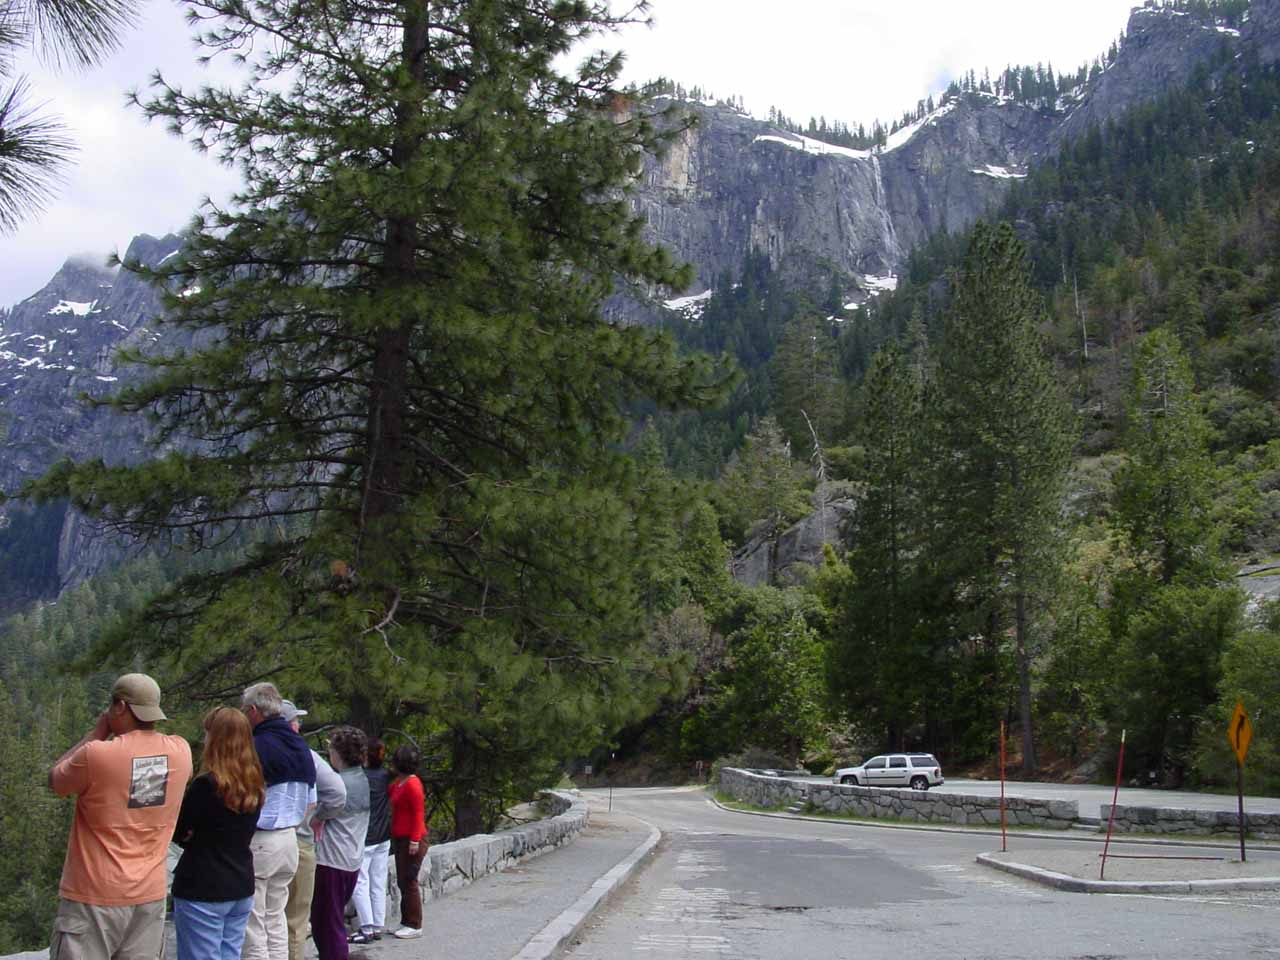 Perhaps this photo best illustrates why Silver Strand Falls is so overlooked.  Notice how everyone else is looking to the left towards Yosemite Valley, but no one is looking up at this falls